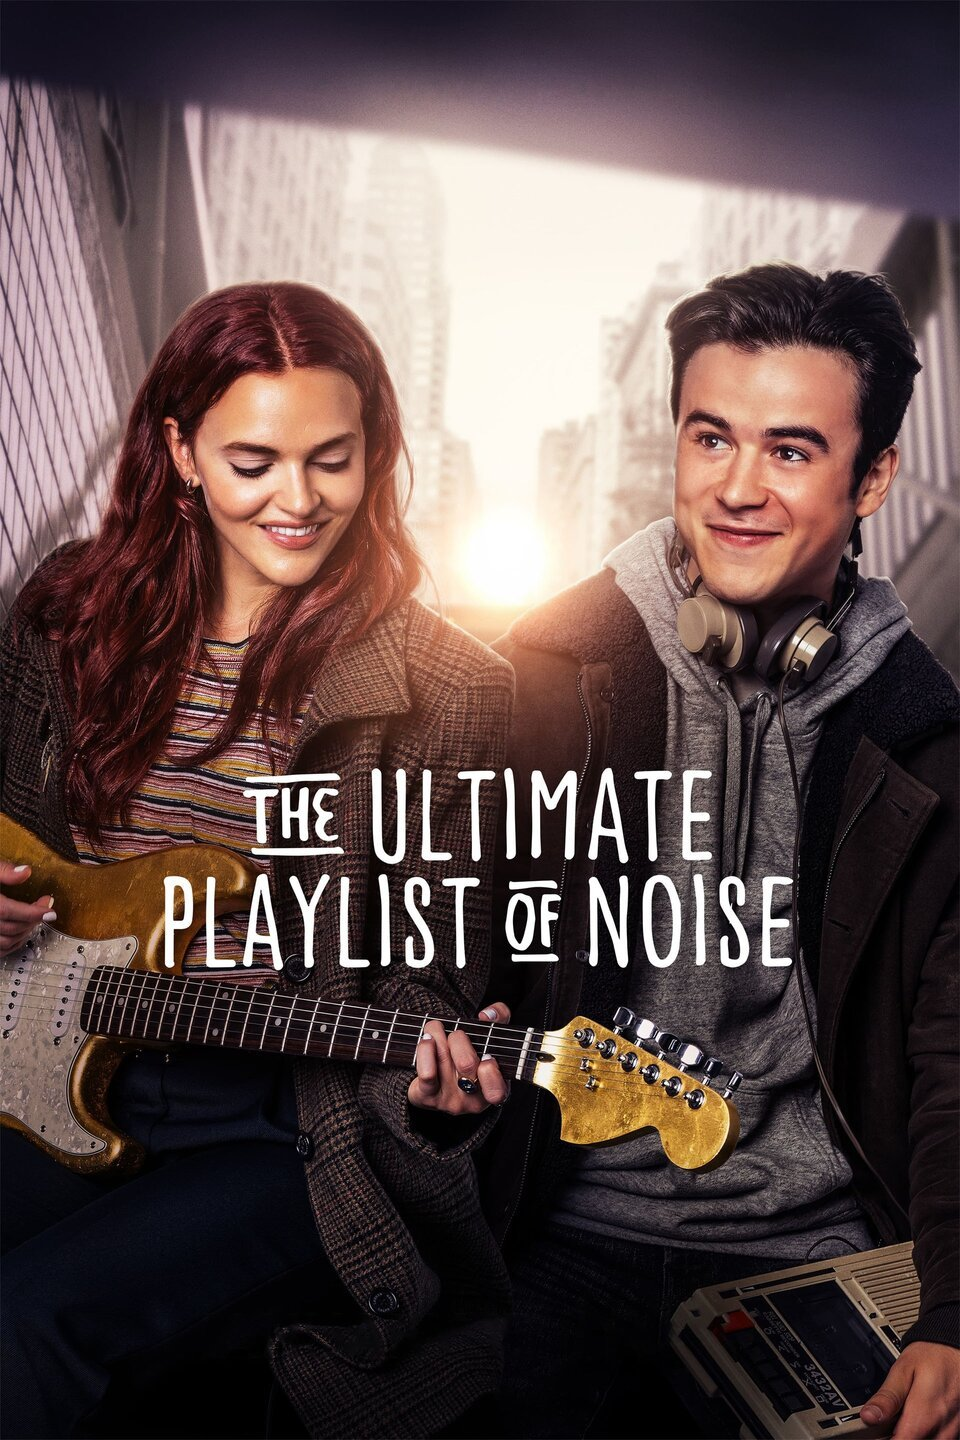 The Ultimate Playlist of Noise (2021) - Rotten Tomatoes